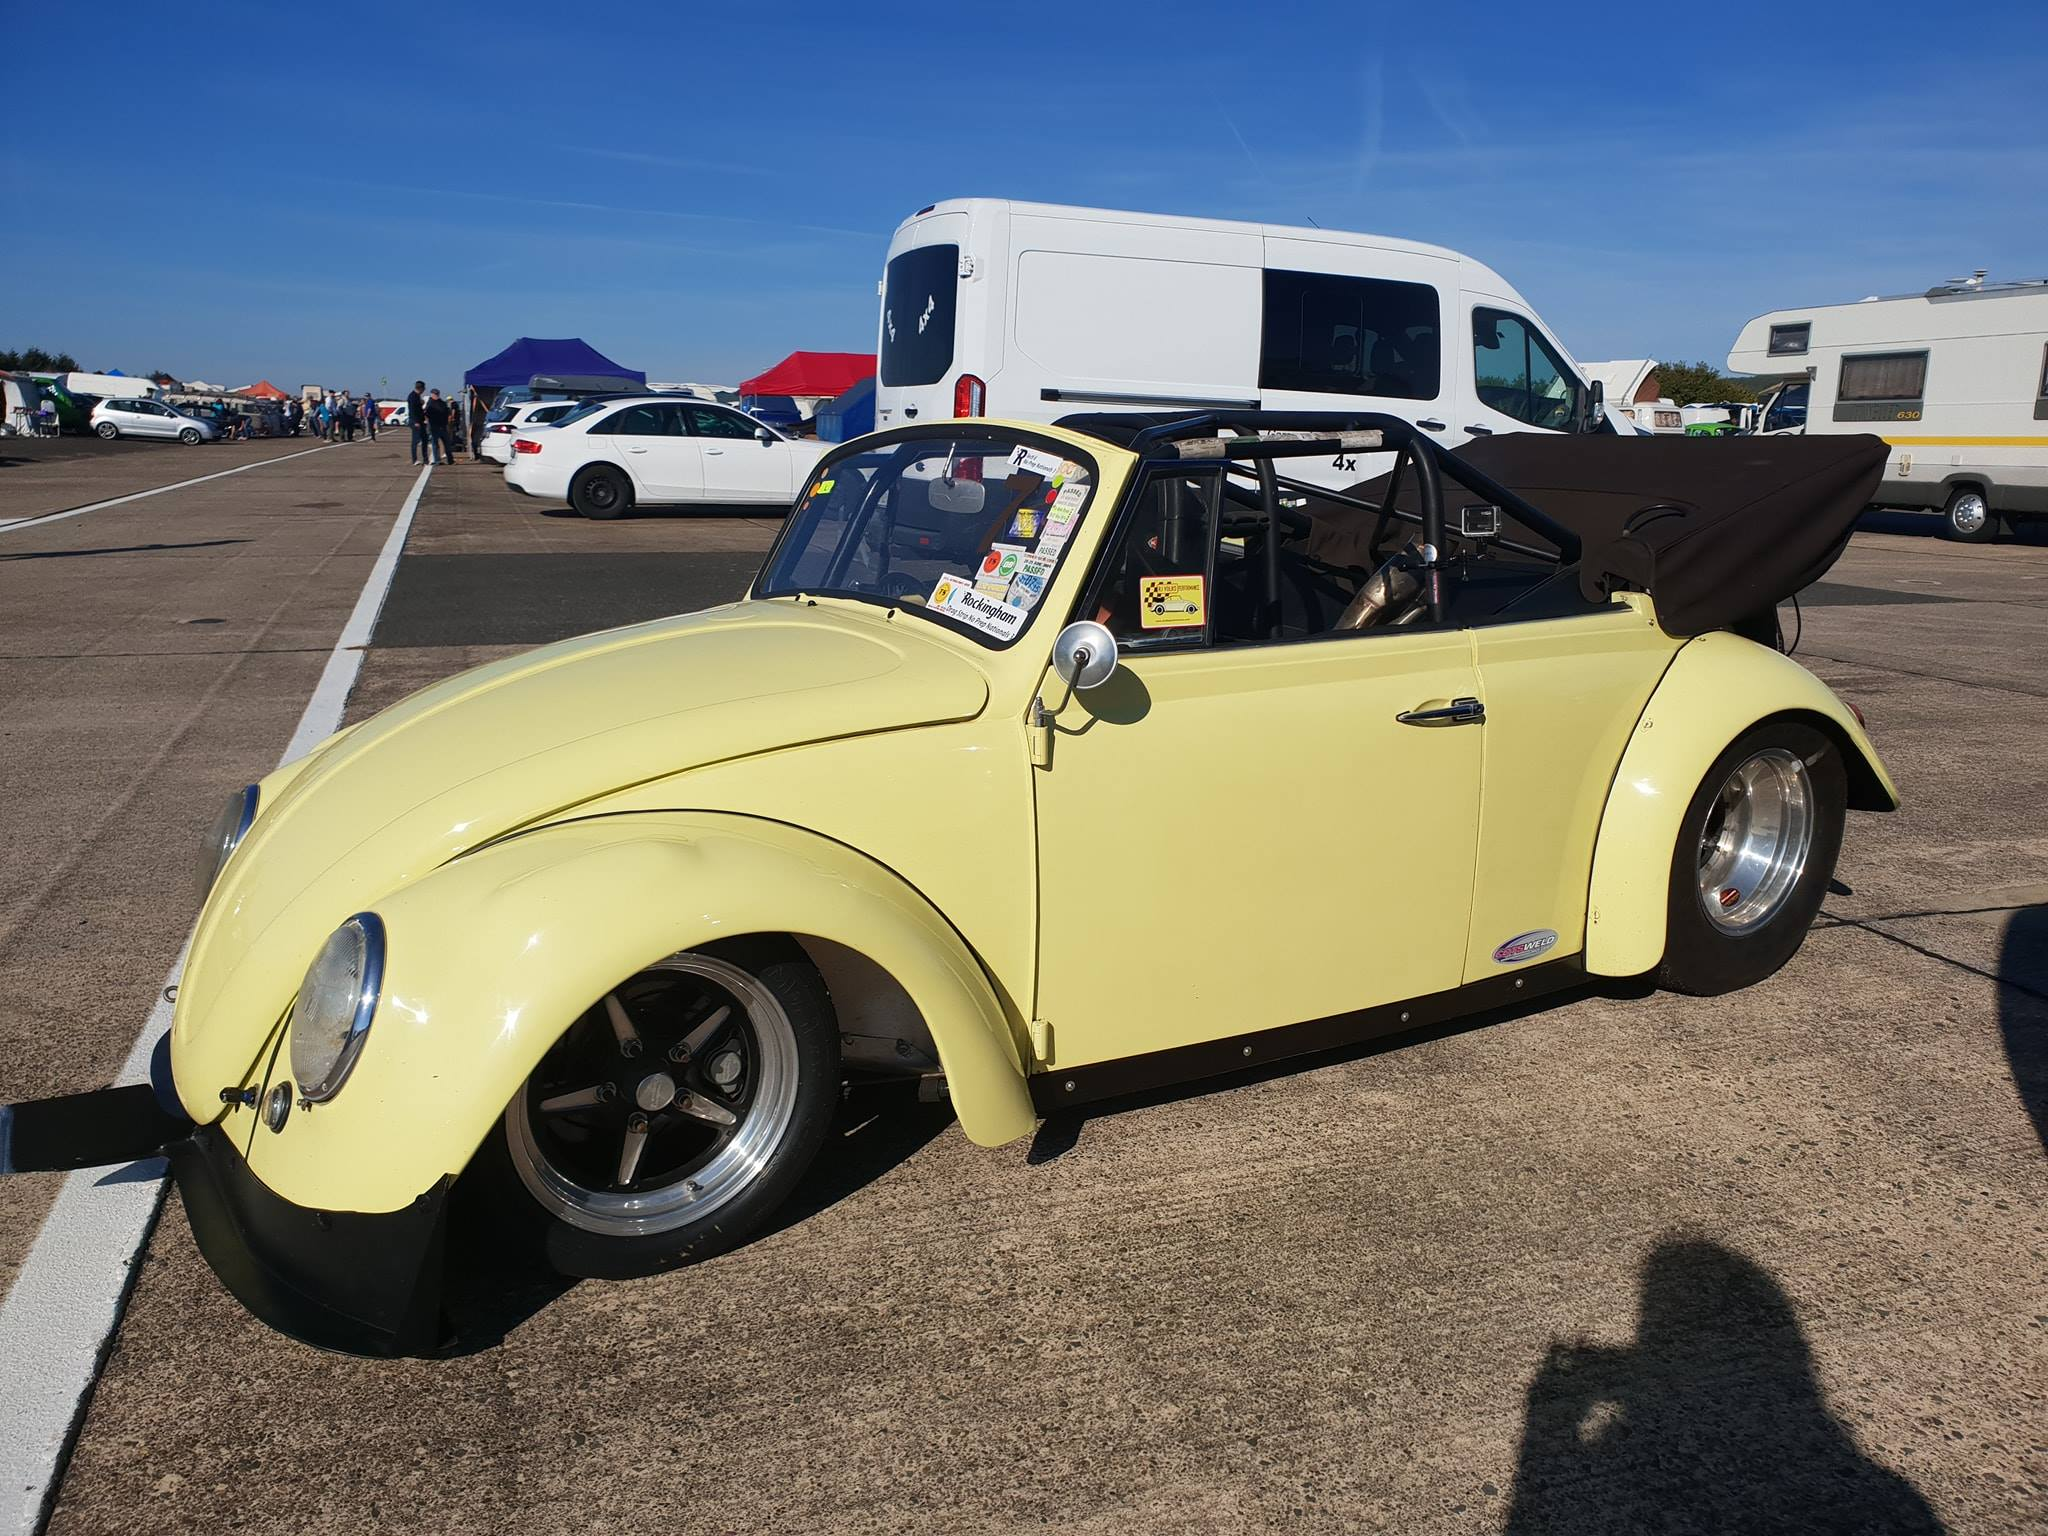 Beetle Cabriolet with a turbo 2600 cc flat-four